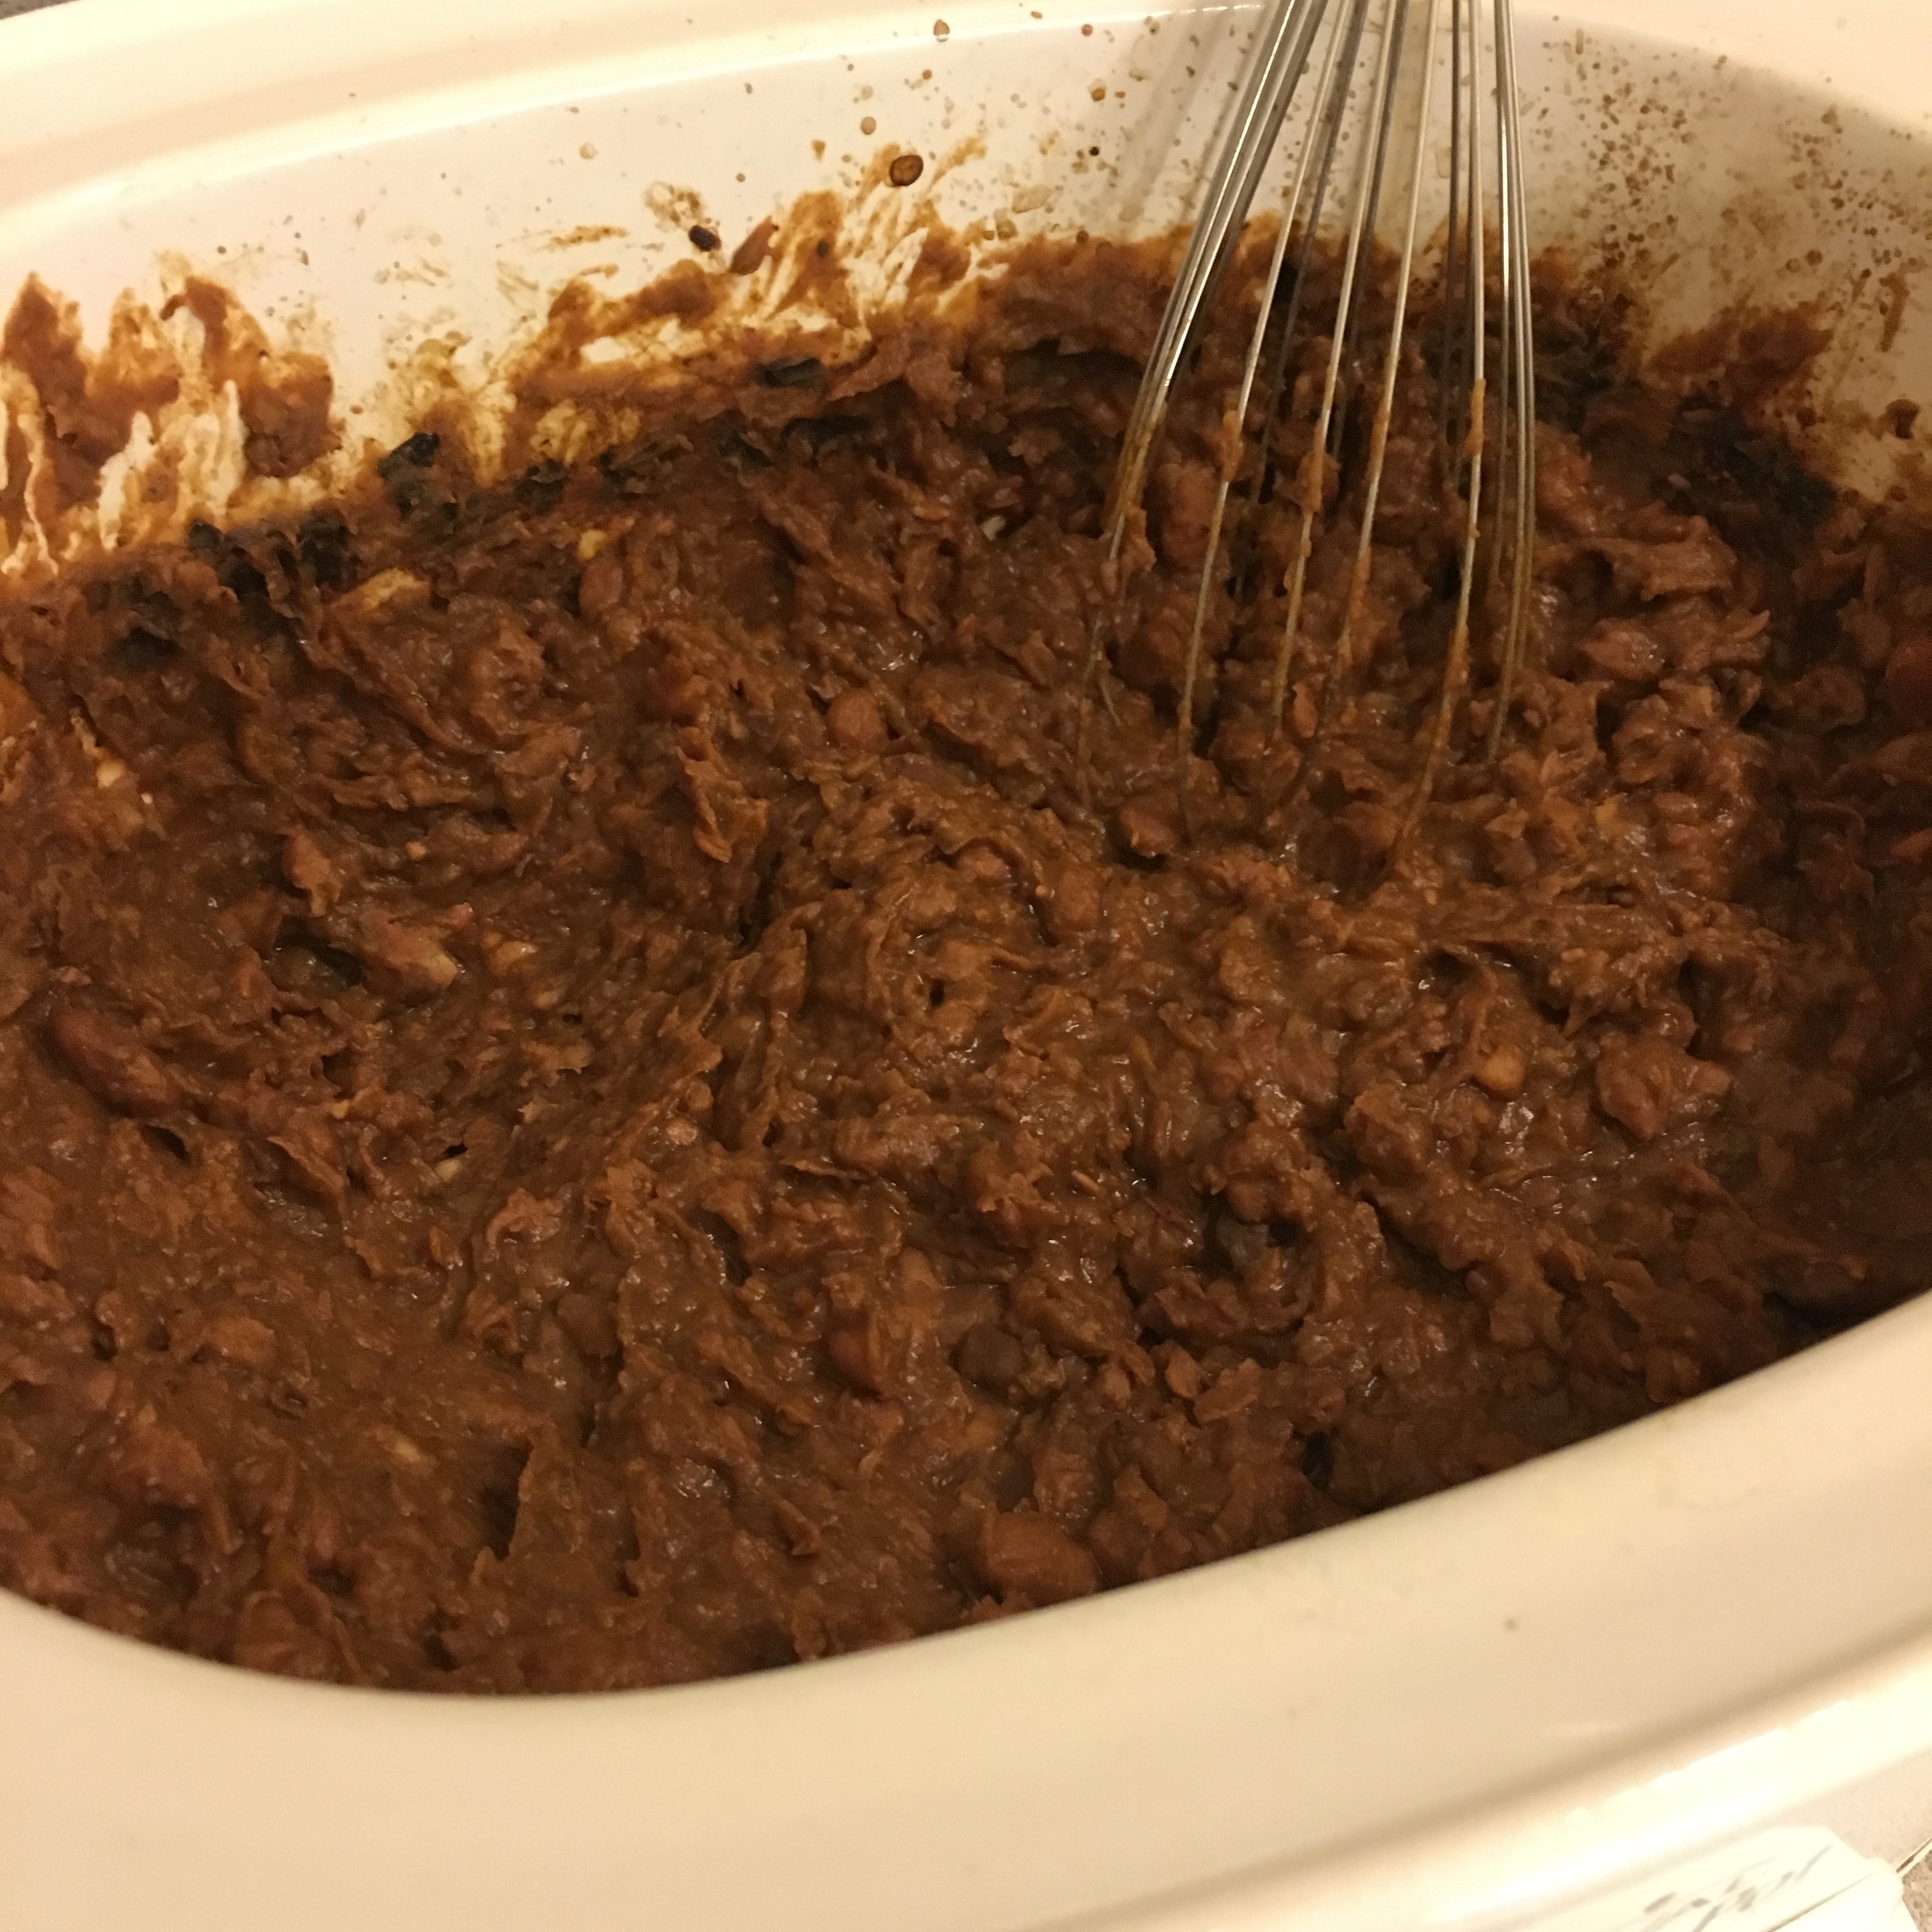 how to cook refried beans from can